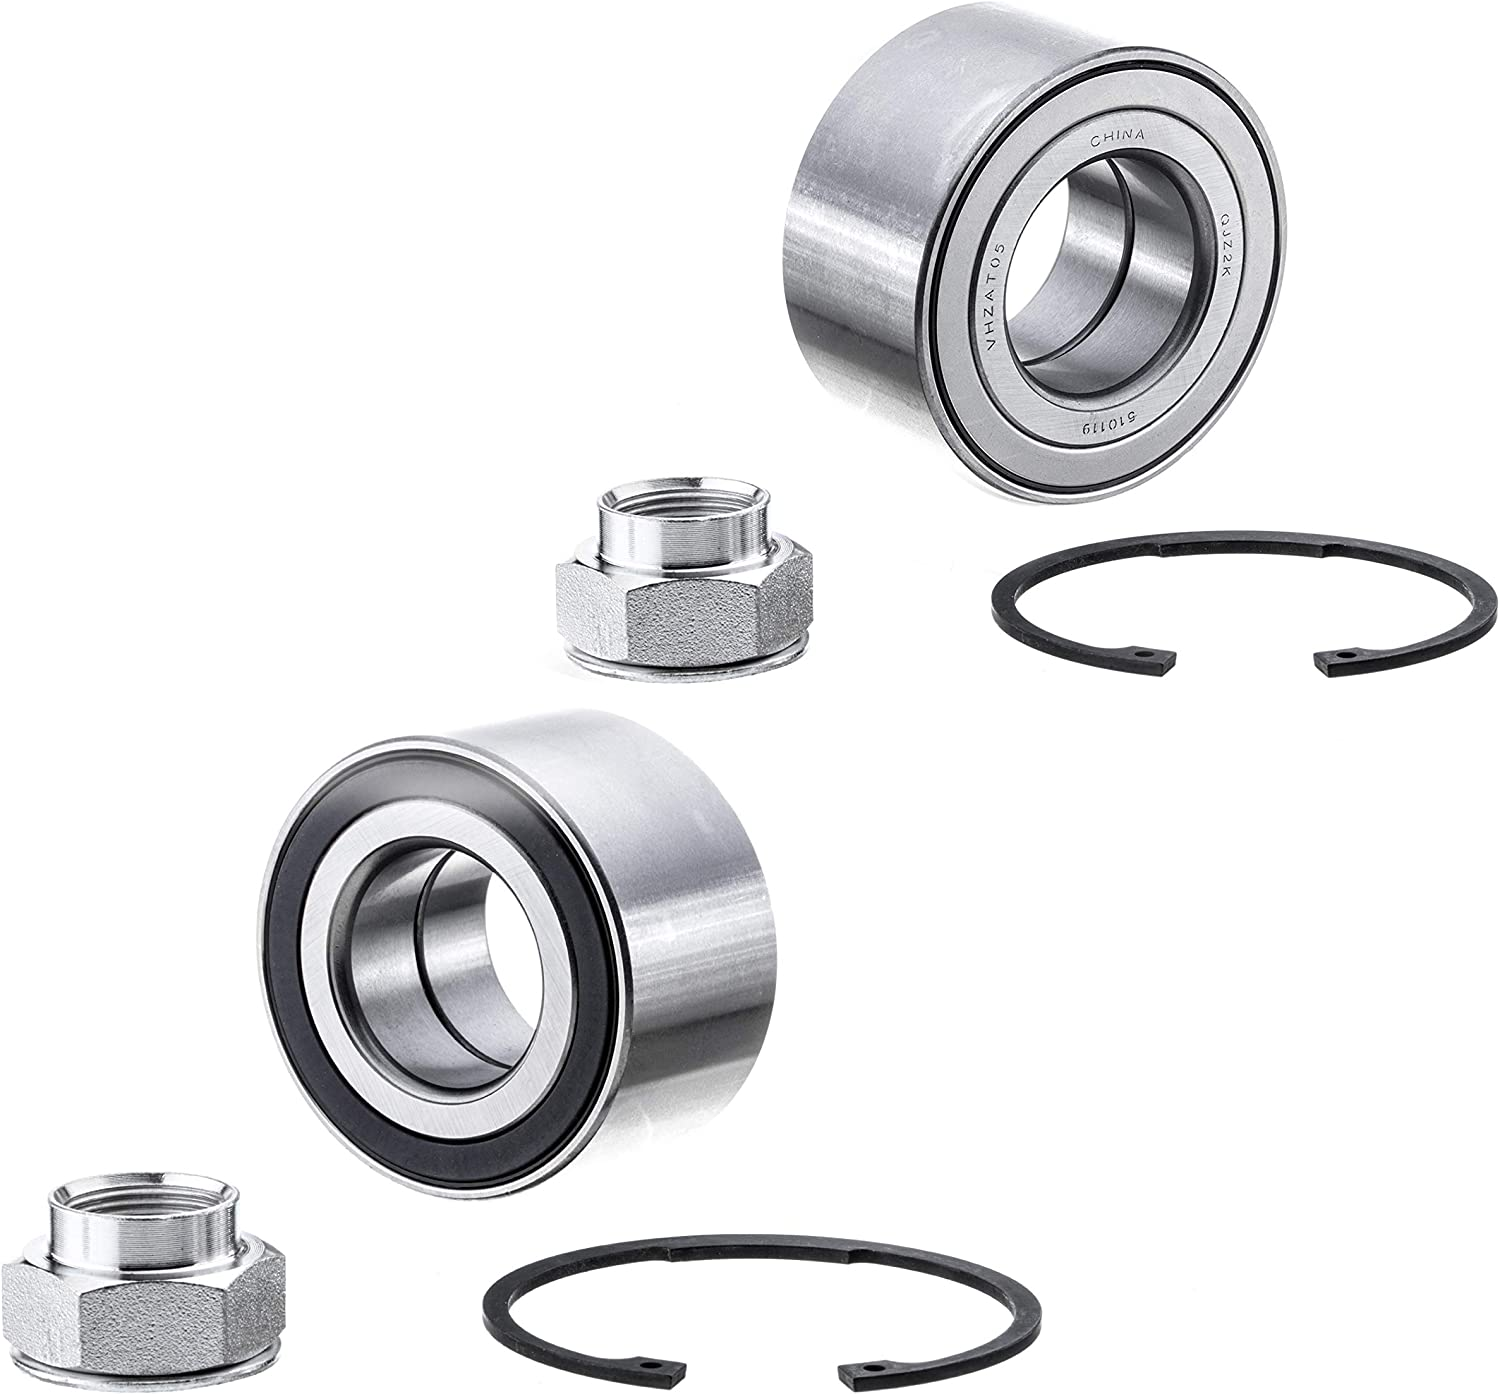 Chevrolet 2012-2018 Sonic 2-Pack//Pair 2014-2016 Spark EV 2013-2018 Trax 510119K FRONT PAIR Wheel Hub Bearing Kit for 2013-2018 Buick Encore Cross Reference: WB000054 // WE61646 // FW219